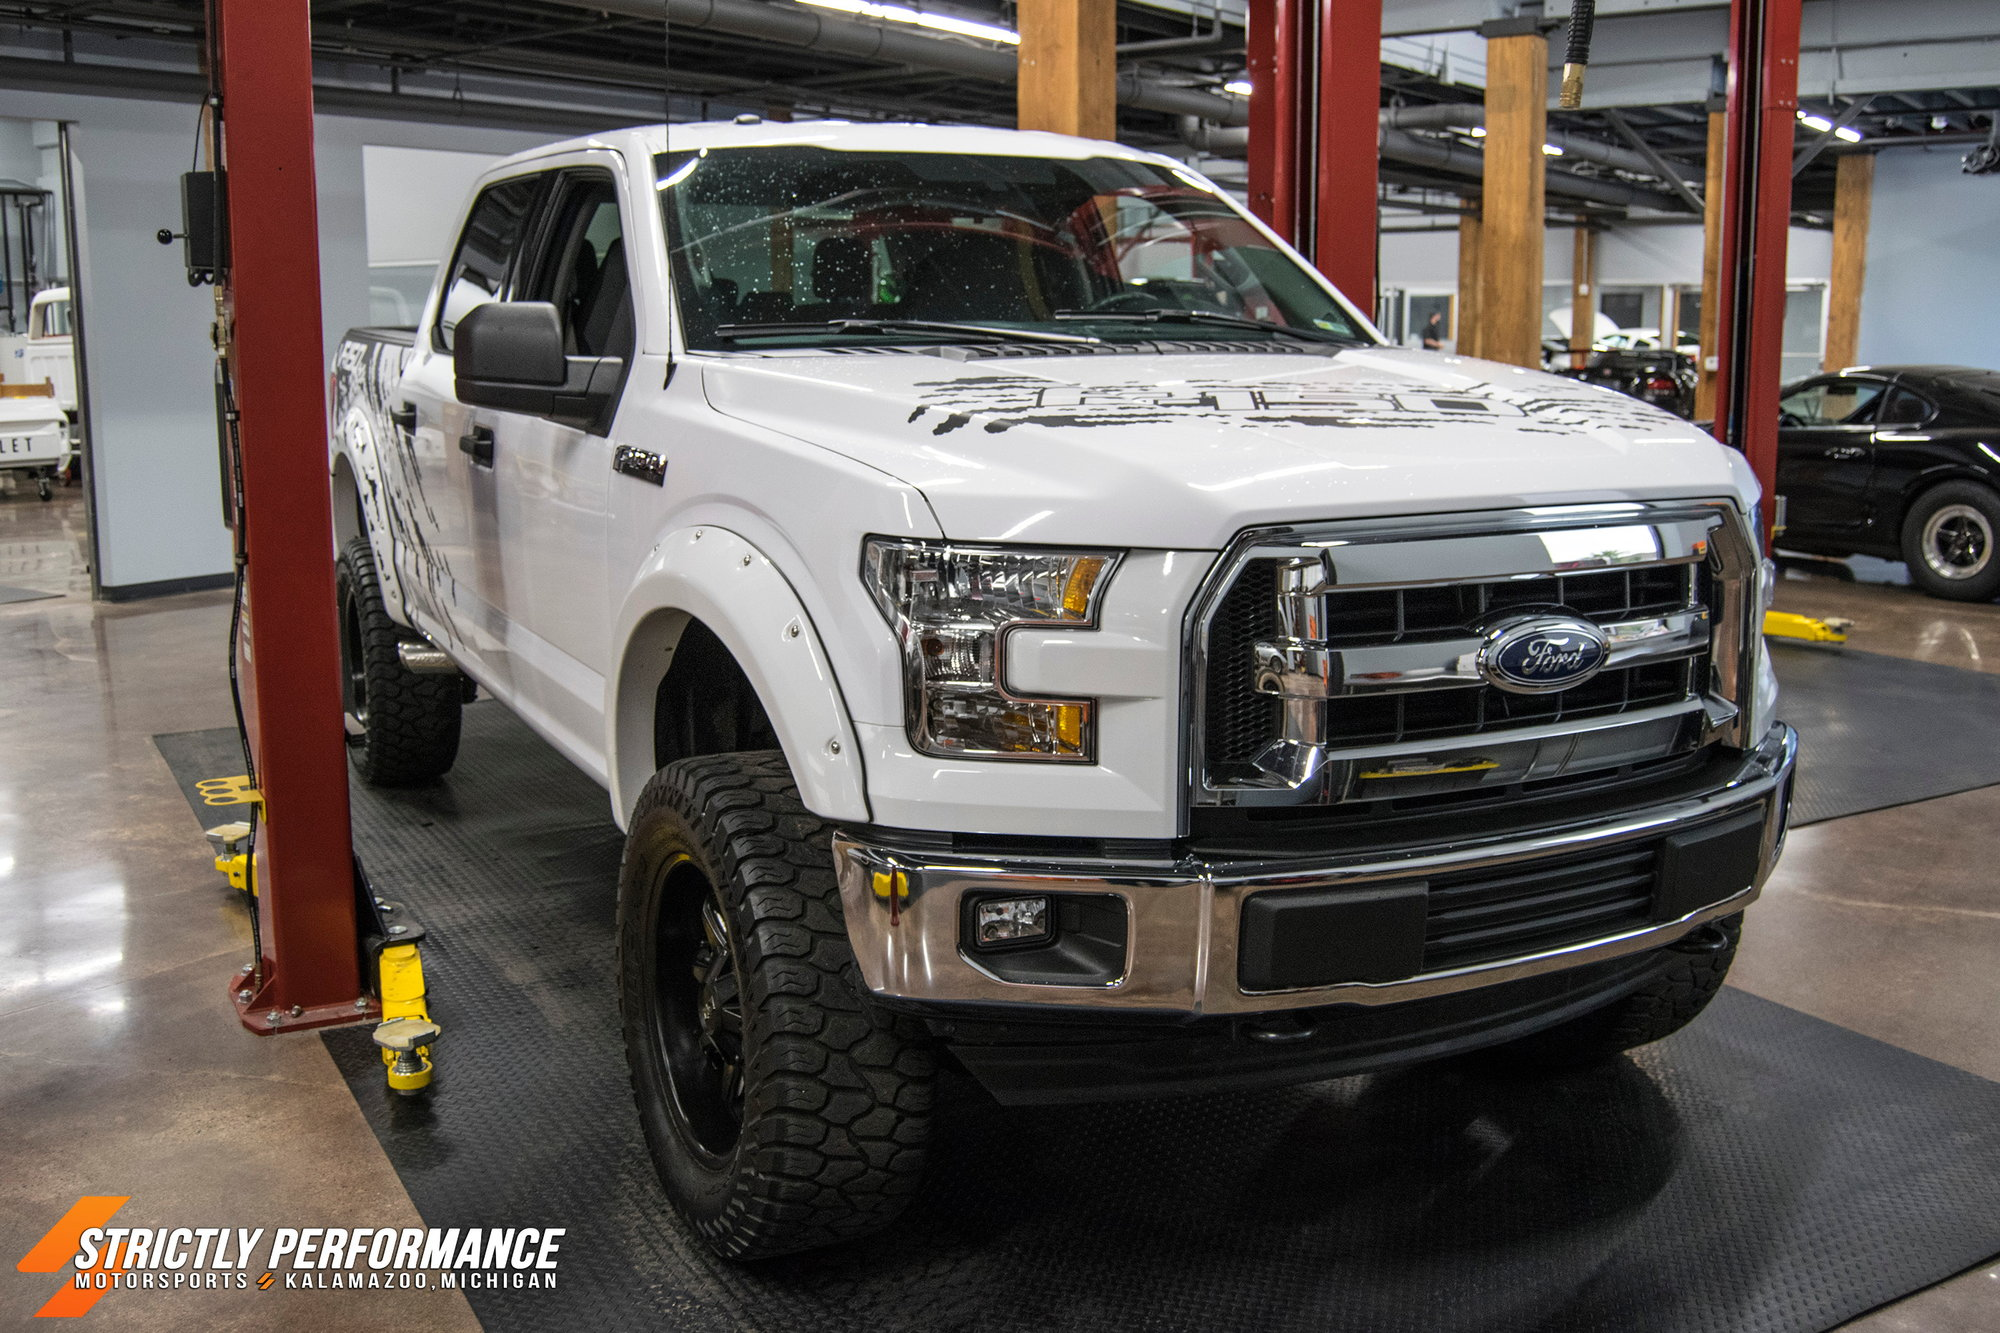 5 0 Hellion Twin Turbo 2017 F150 Build - PerformanceTrucks net Forums